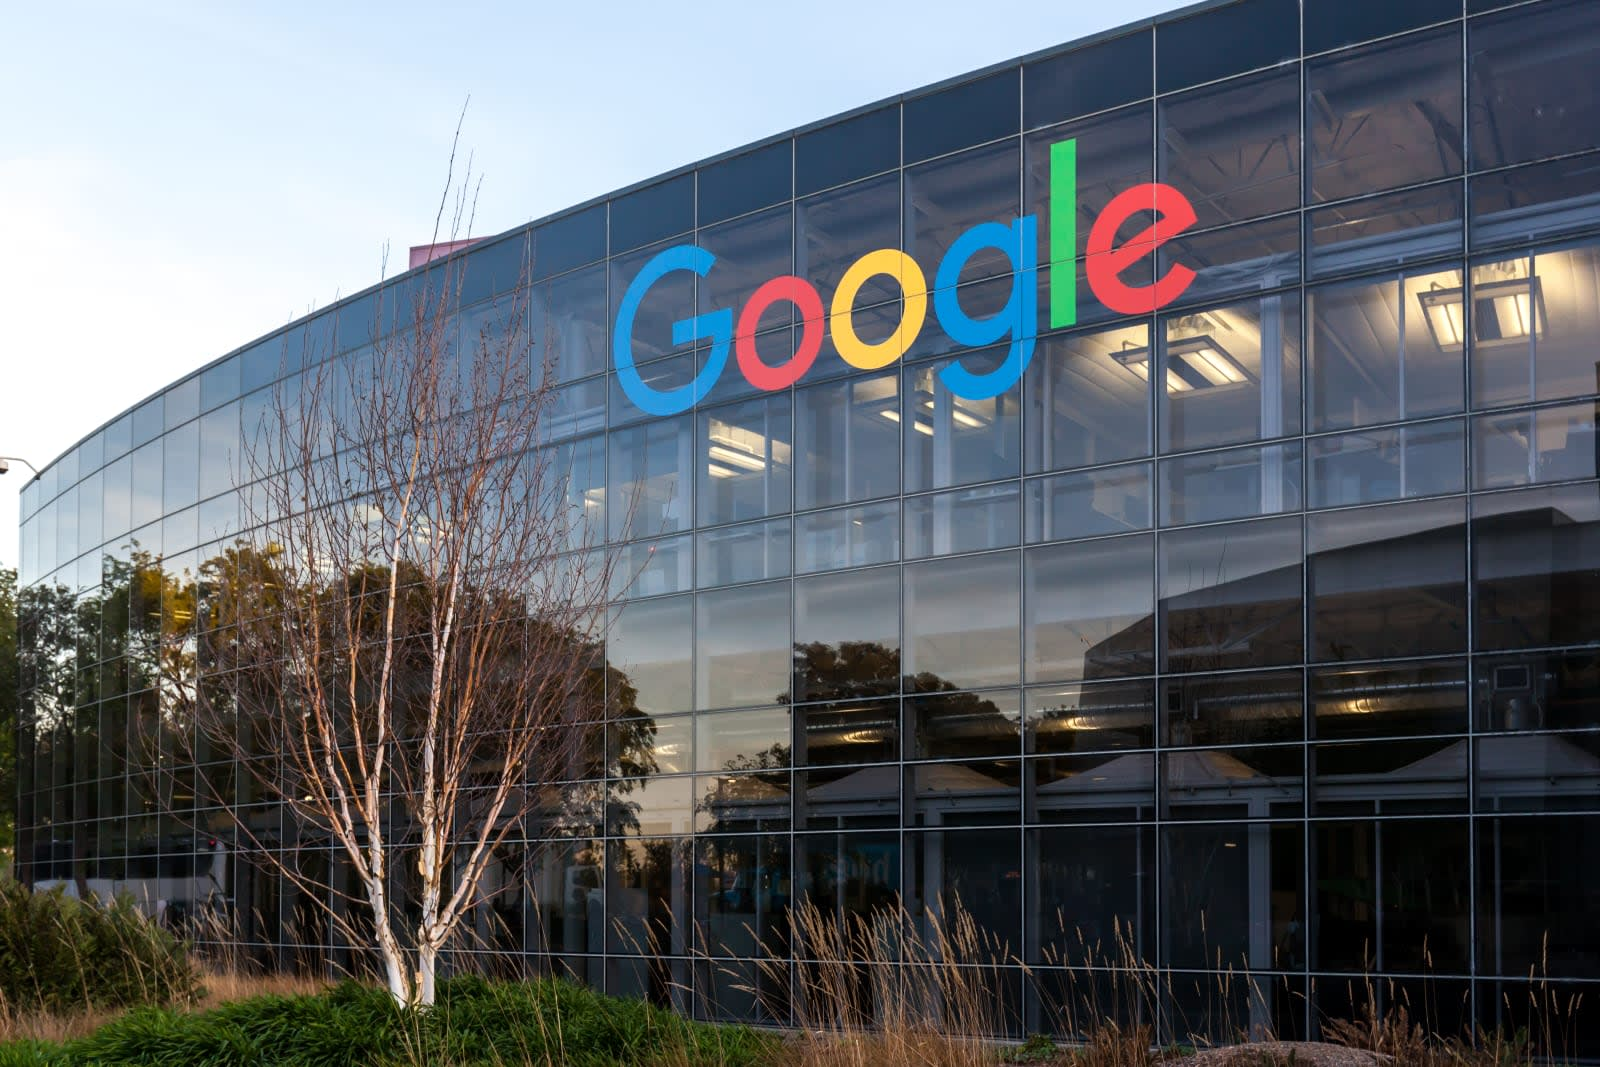 Google employee claims it discriminates against pregnant women